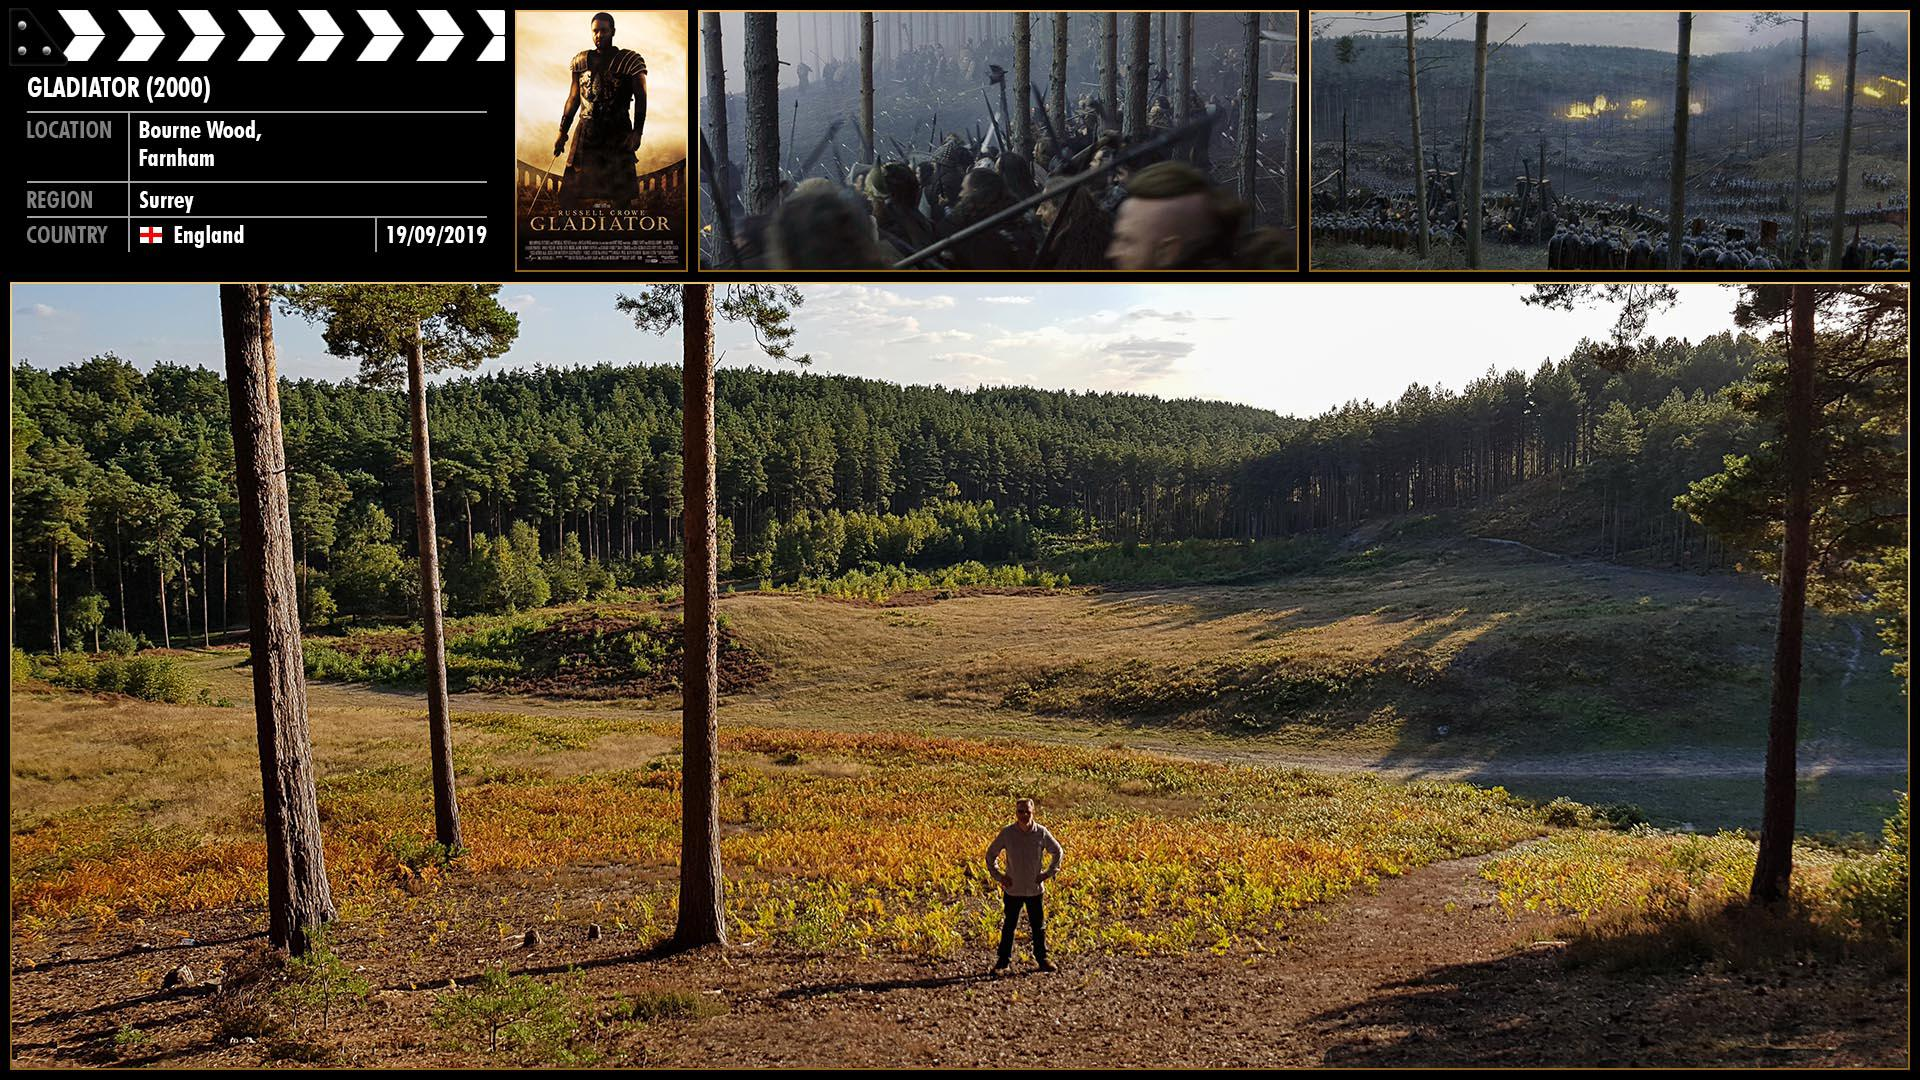 Filming location photo for Gladiator (2000) 2 of 7